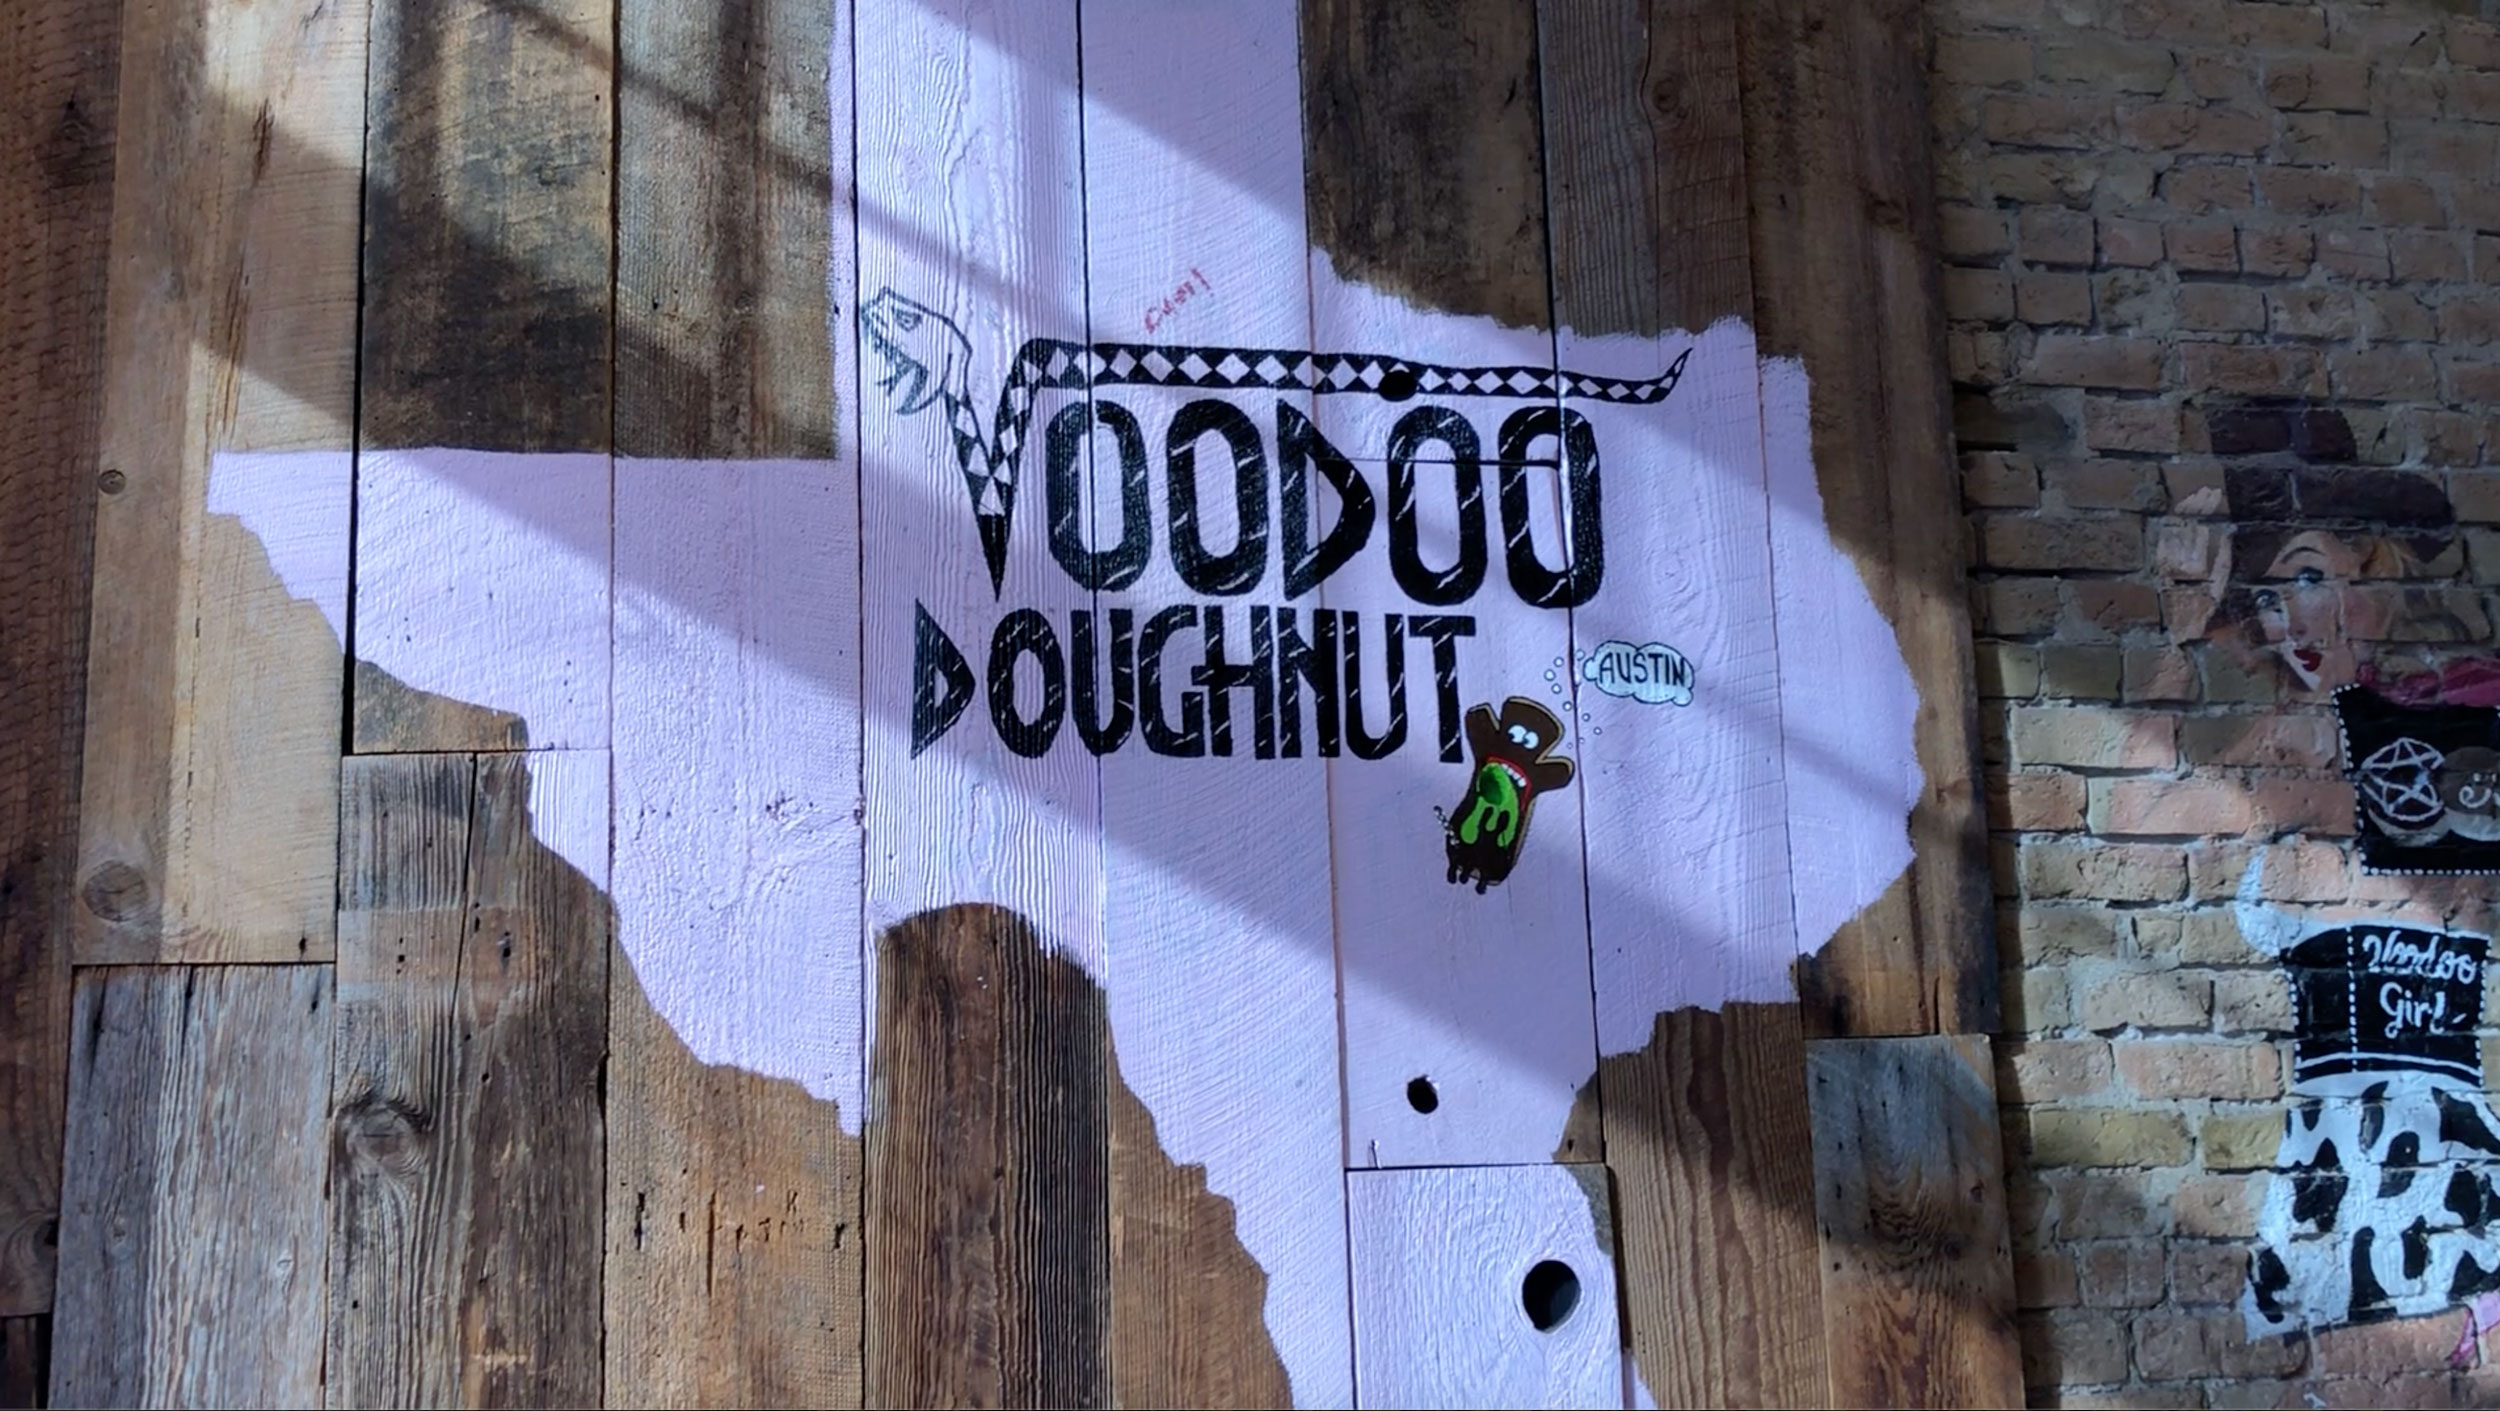 An Austin, Texas mainstay…VooDoo Doughnut serves up their creative sugar treats 24 hours a day.